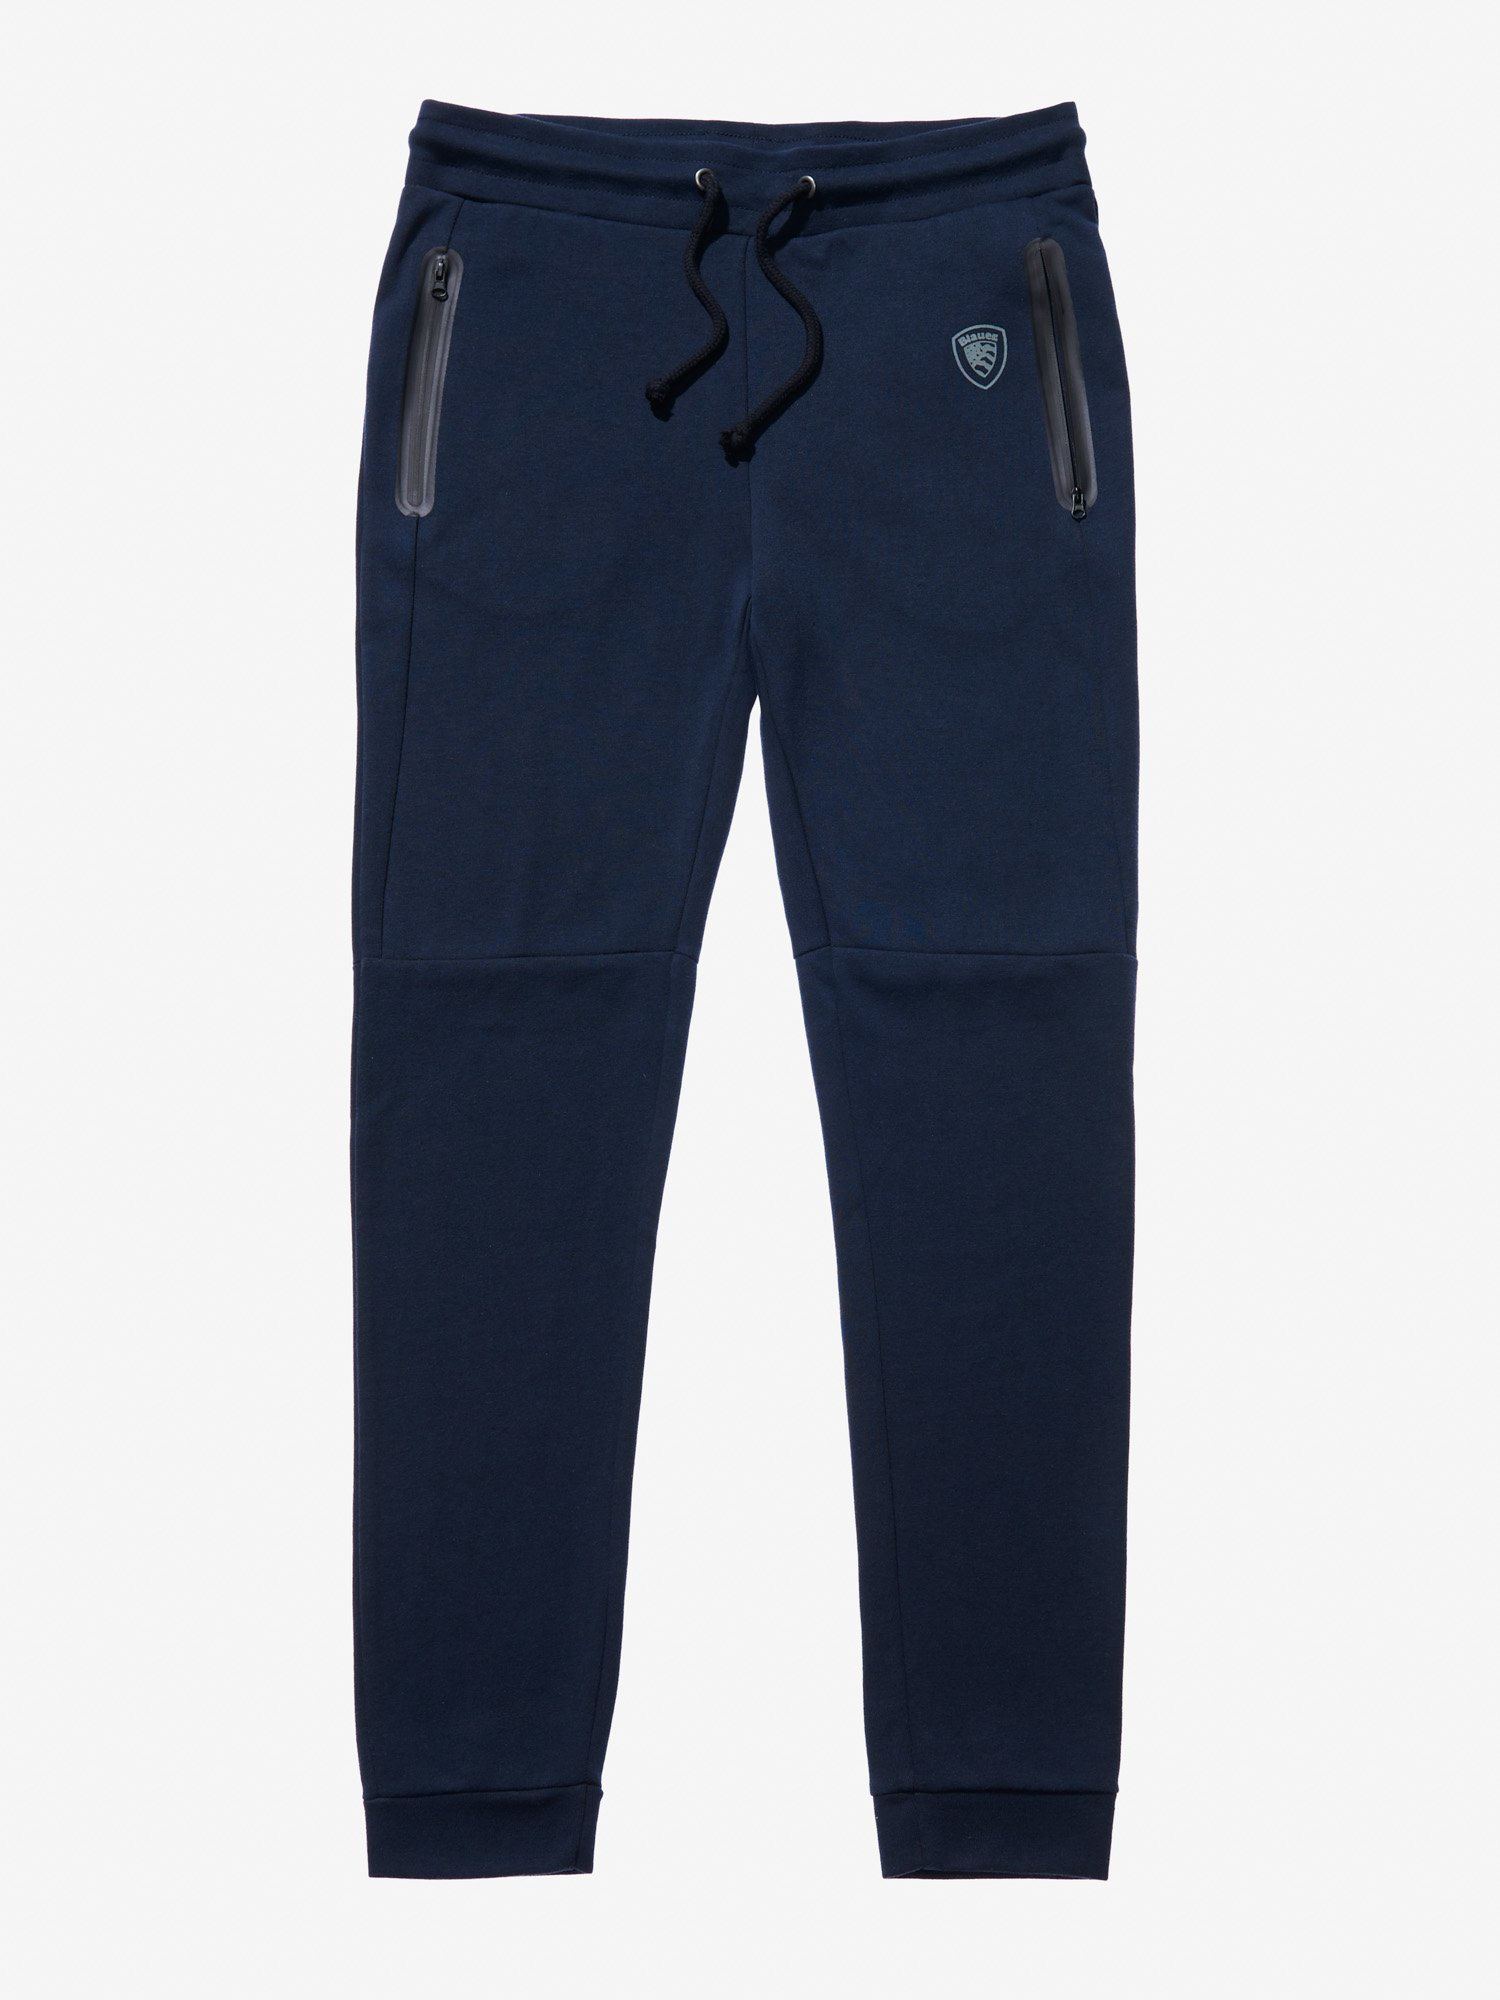 COTTON-BLEND SWEATPANTS - Blauer